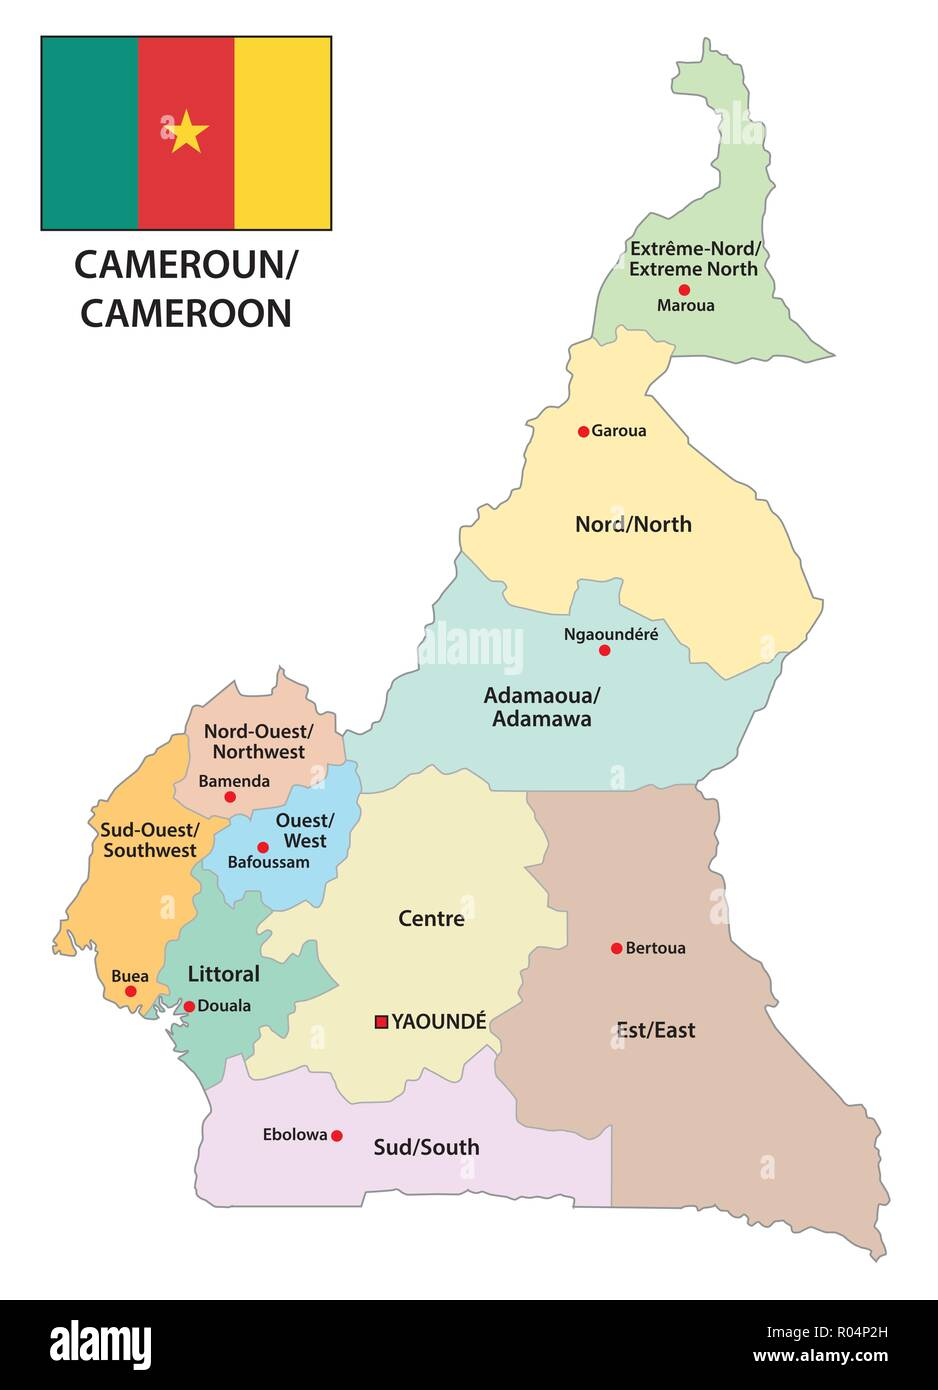 Republic Of Cameroon Administrative And Political Map With Flag